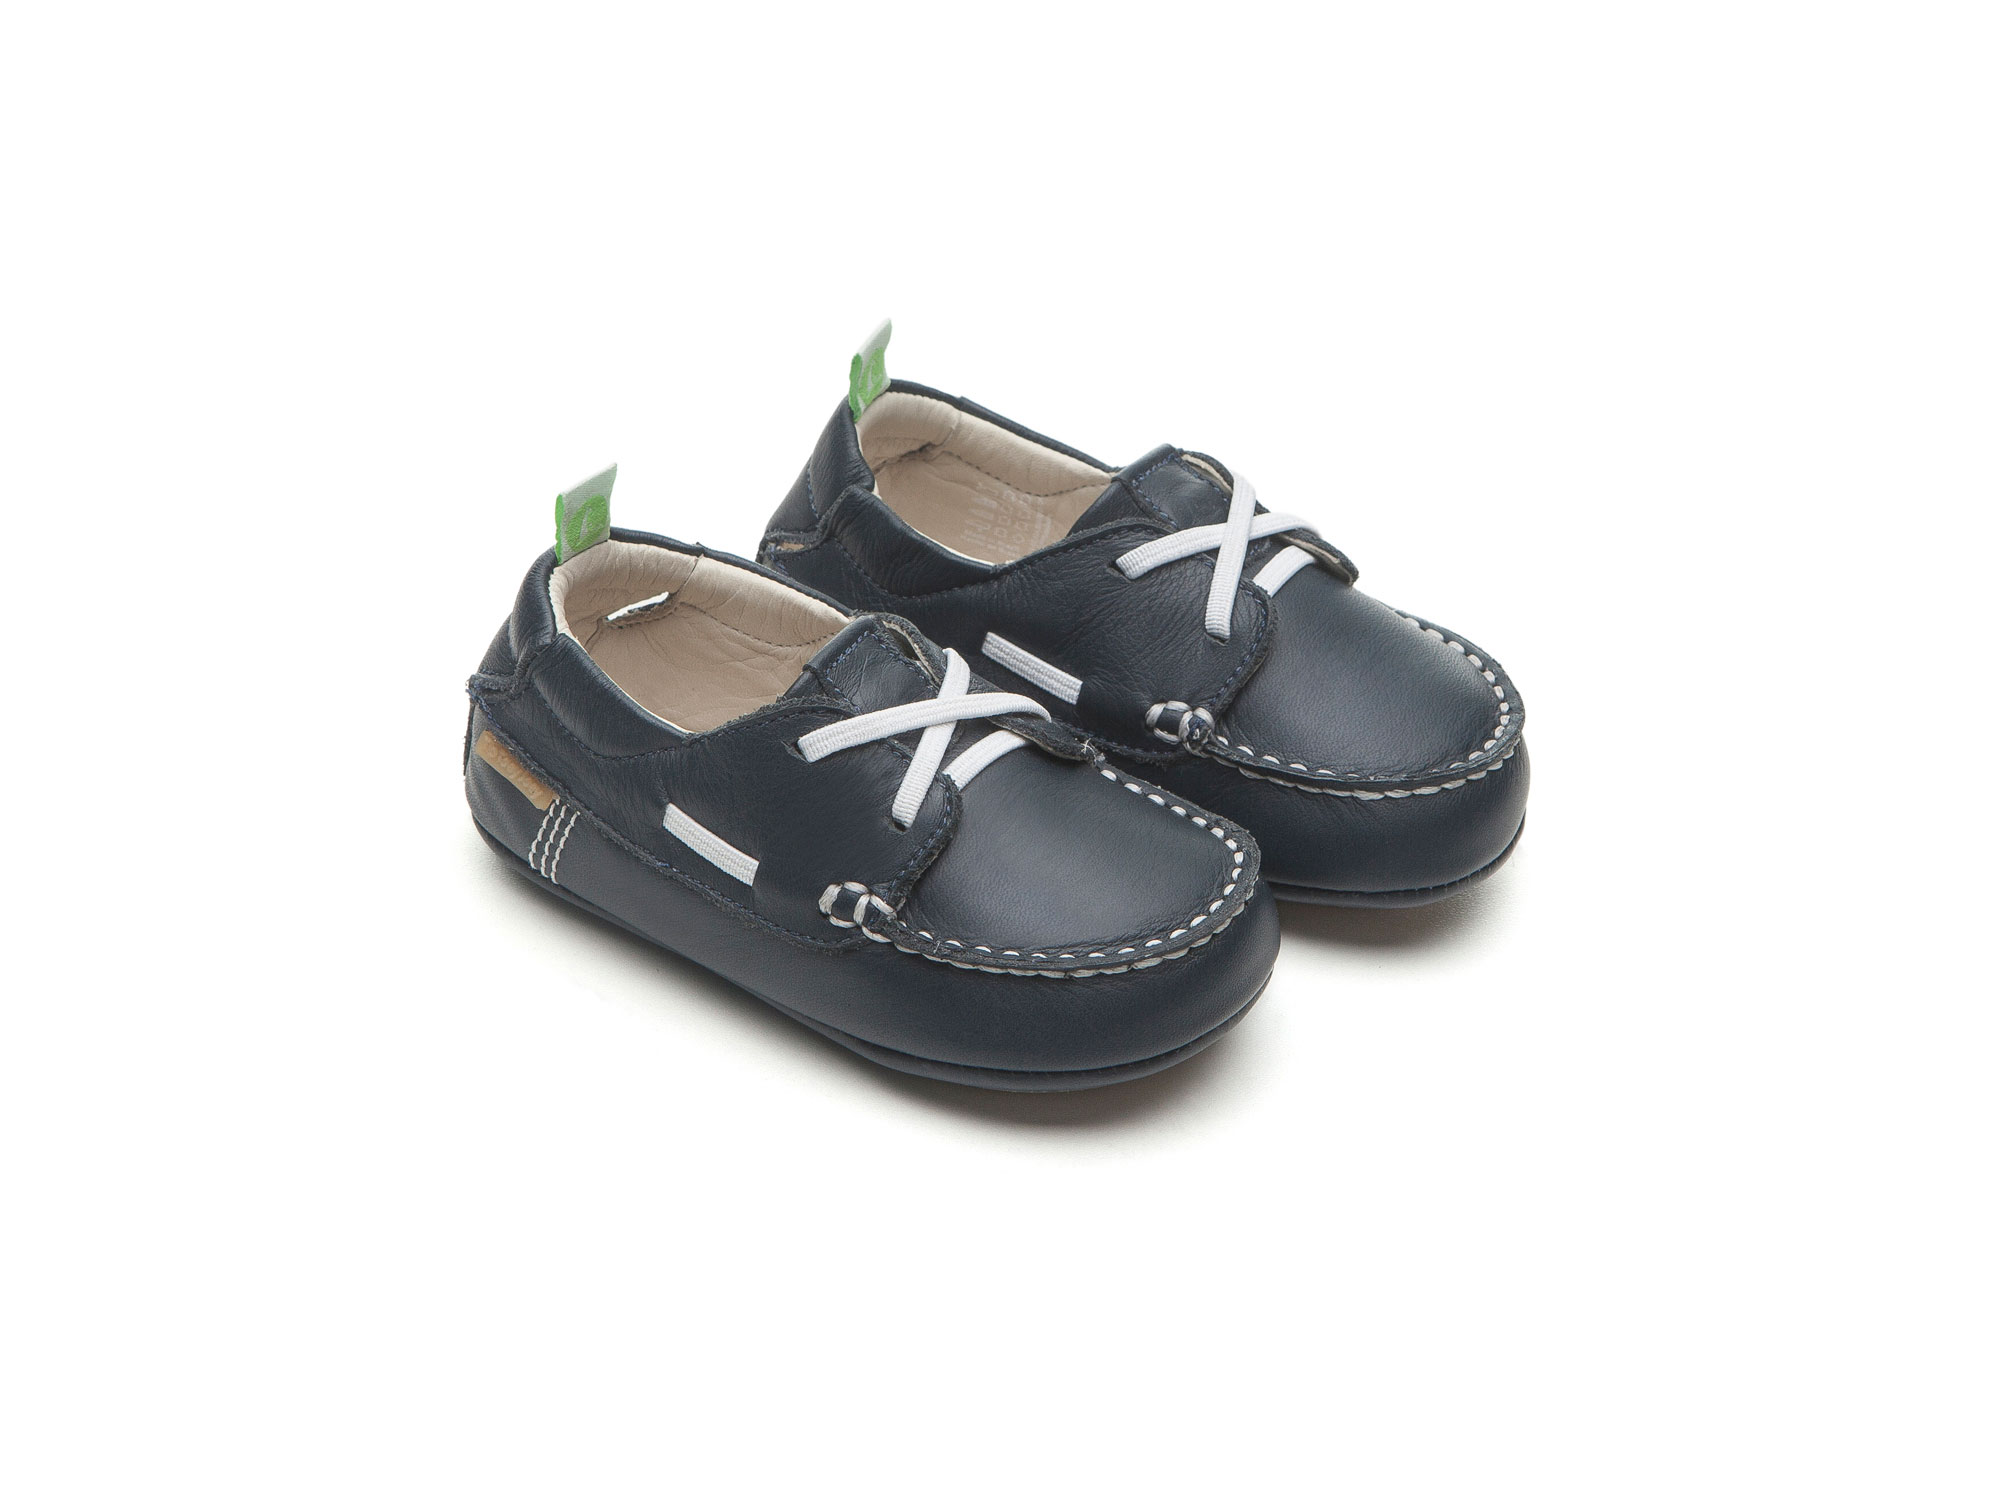 Tênis Boaty Navy  Baby for ages 0 to 2 years - 0